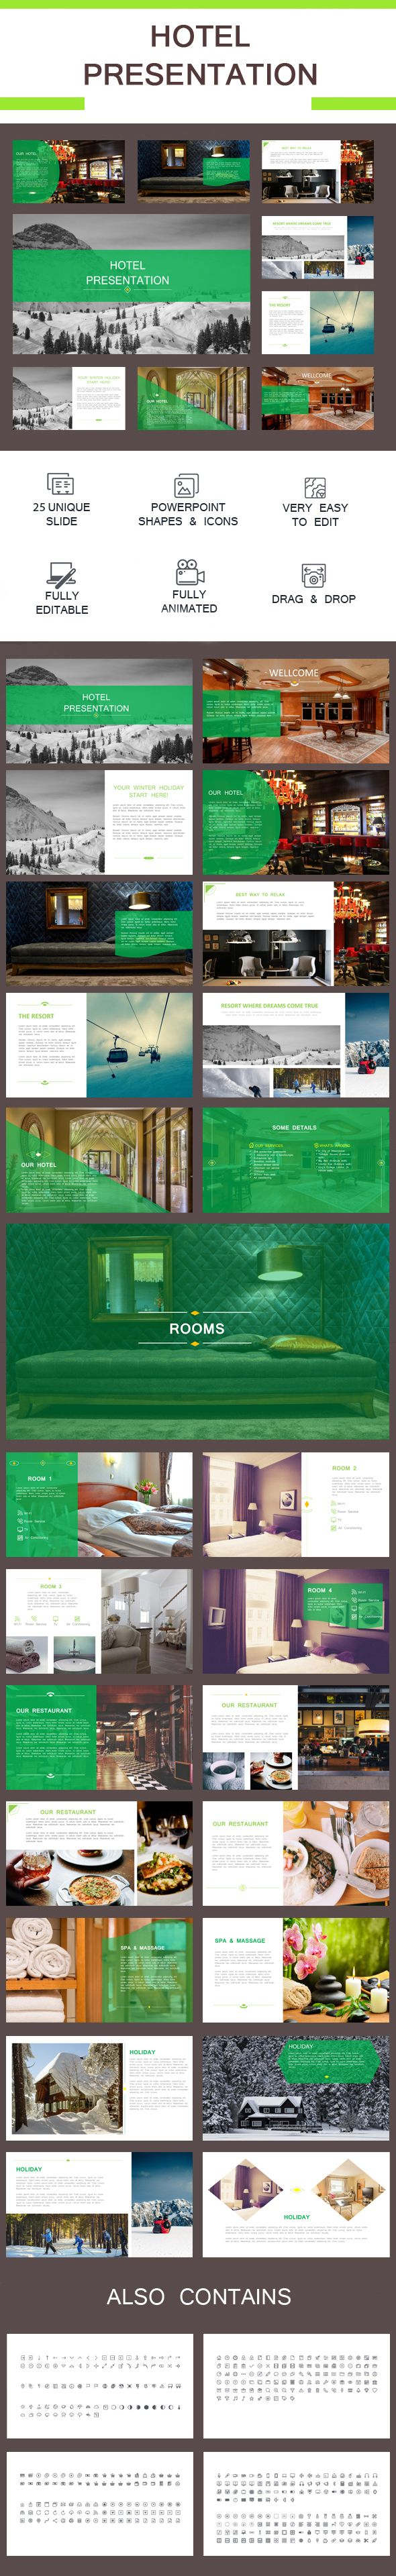 Hotel Presentation Pinterest Business Powerpoint Templates - Best of hotel presentation template ideas